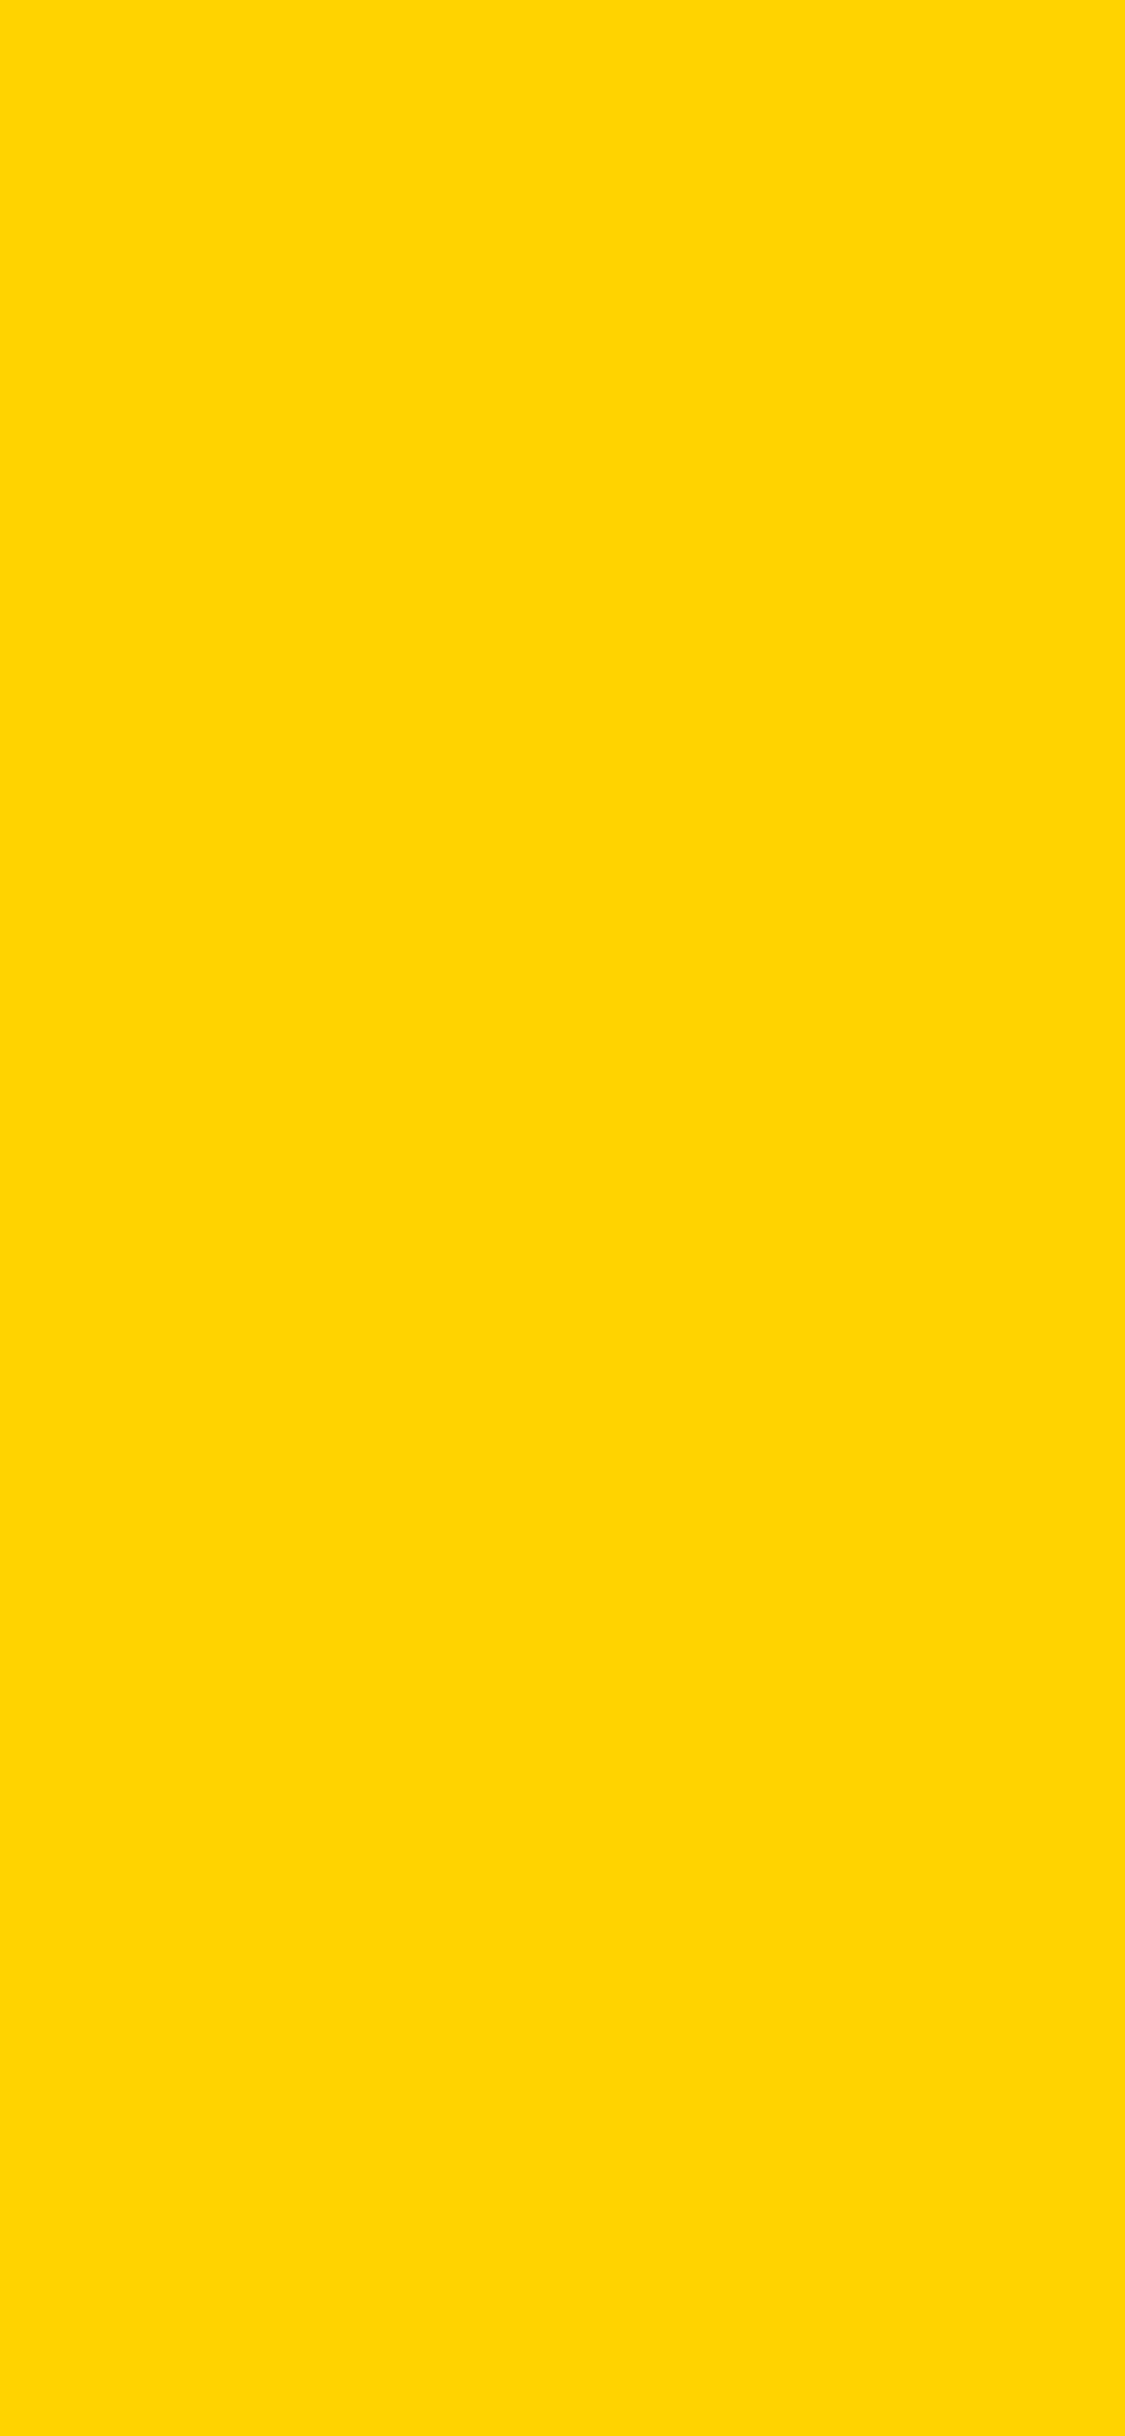 1125x2436 Yellow NCS Solid Color Background